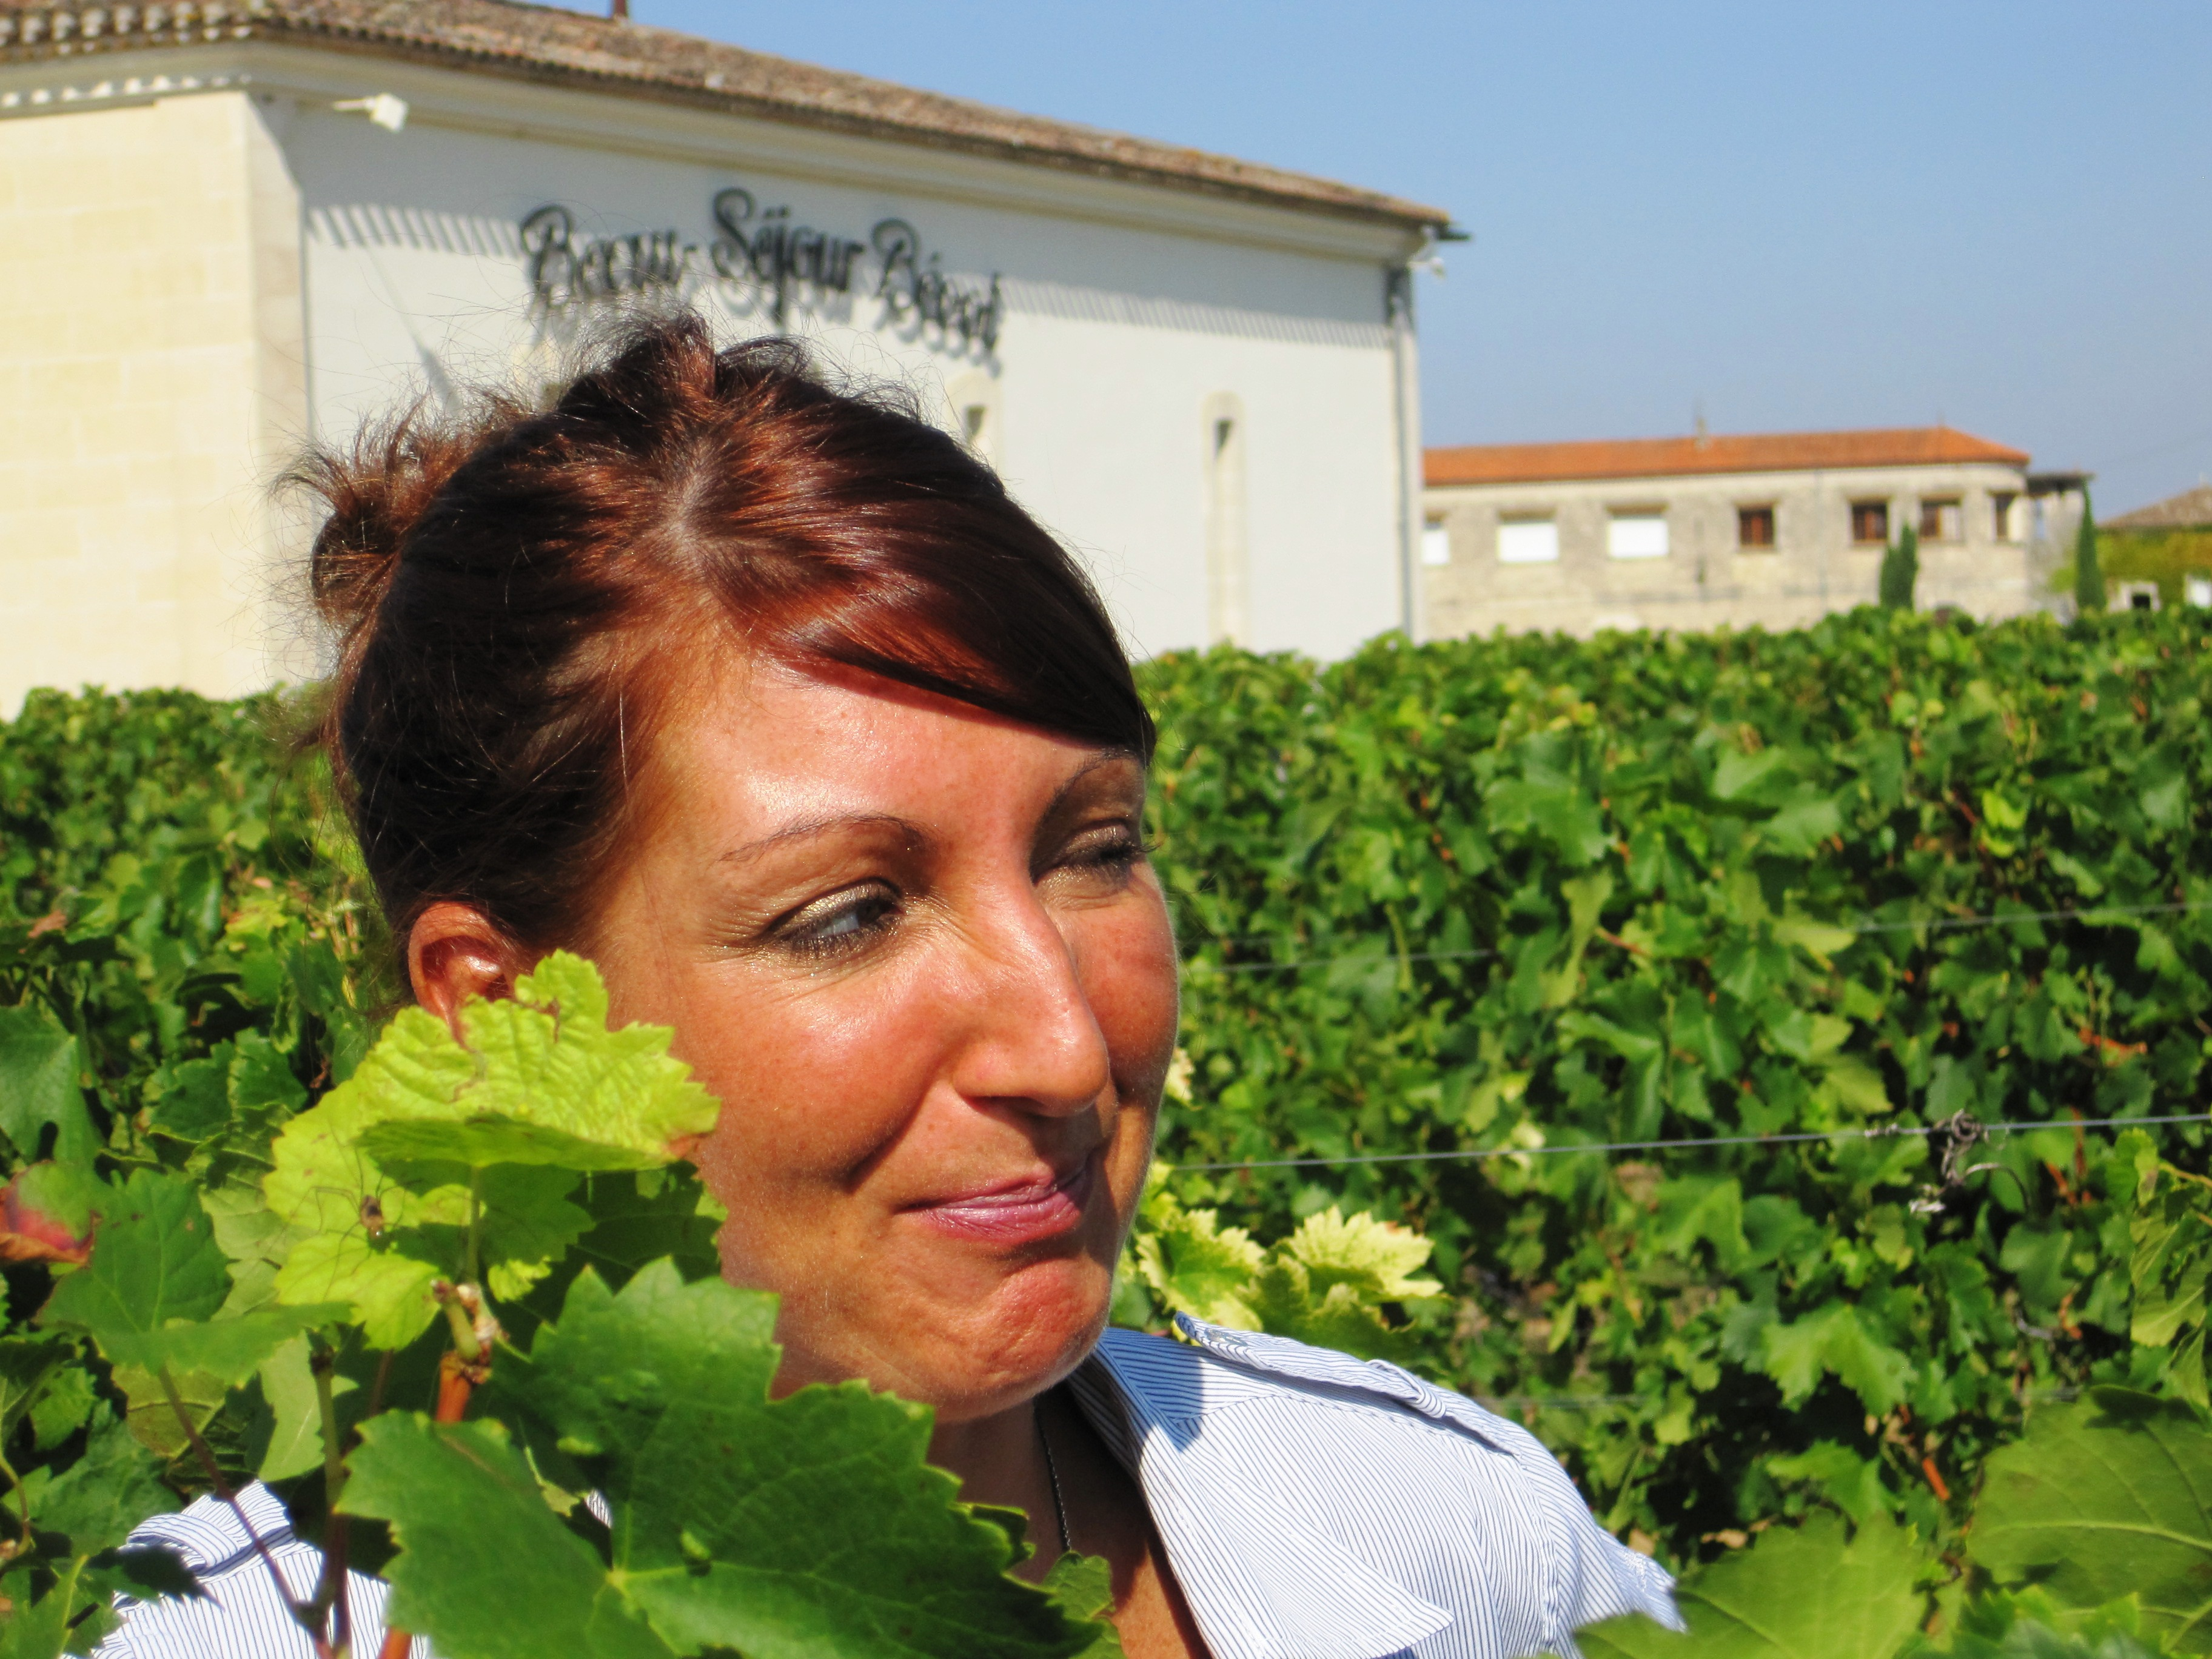 2010 Beau-Sejour Becot Harvest, Juliette Becot tries something new!